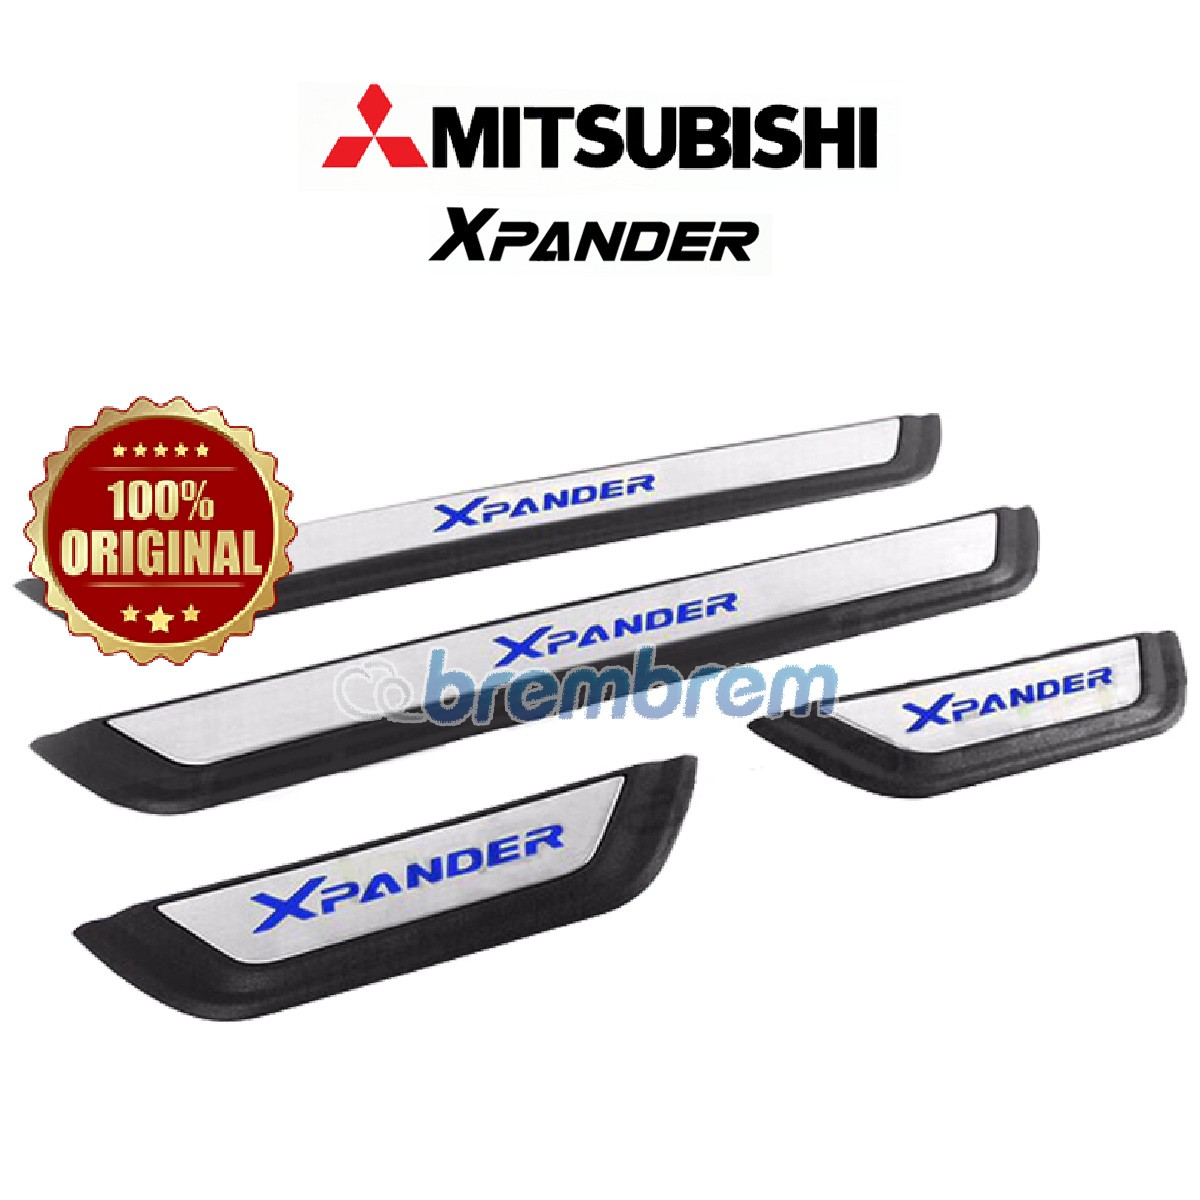 SILLPLATE MITSUBISHI XPANDER WITH LED LAMP